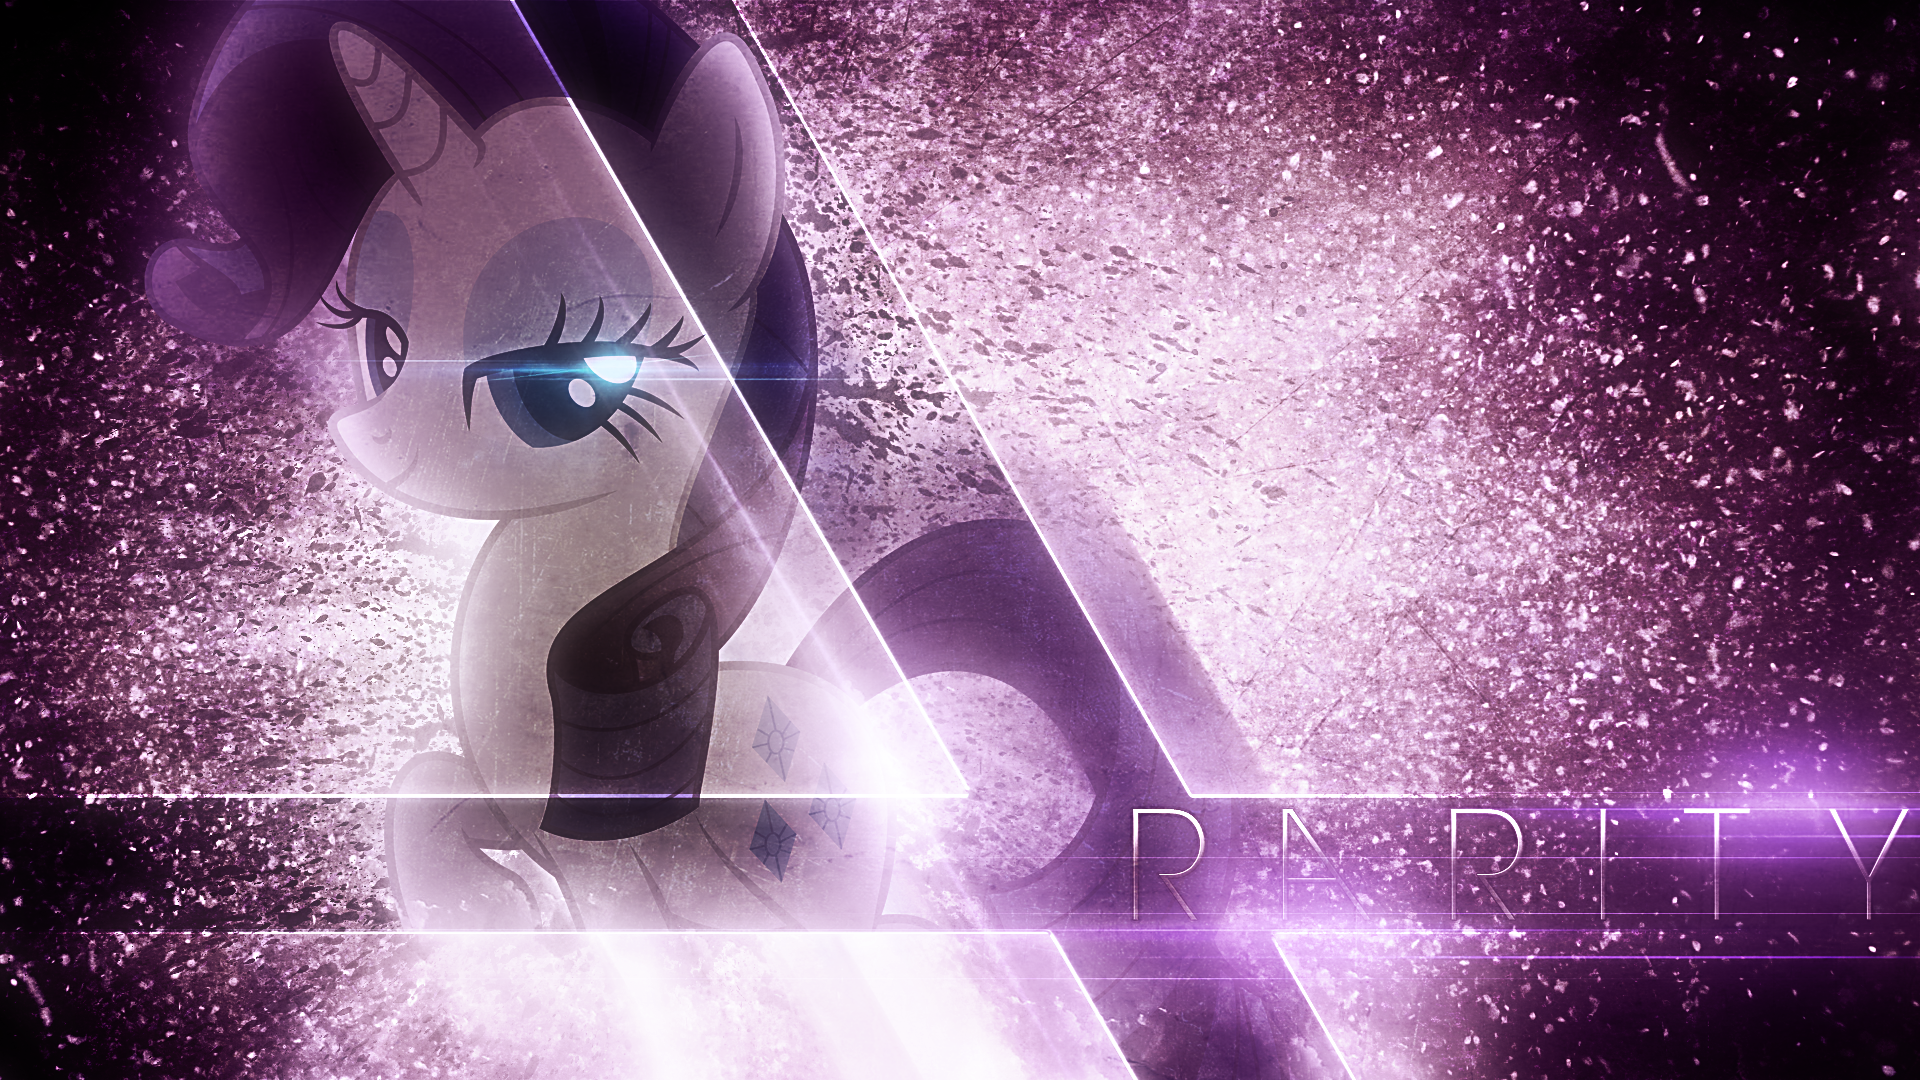 Glamorous Rarity - Wallpaper by MysteriousKaos and Tzolkine